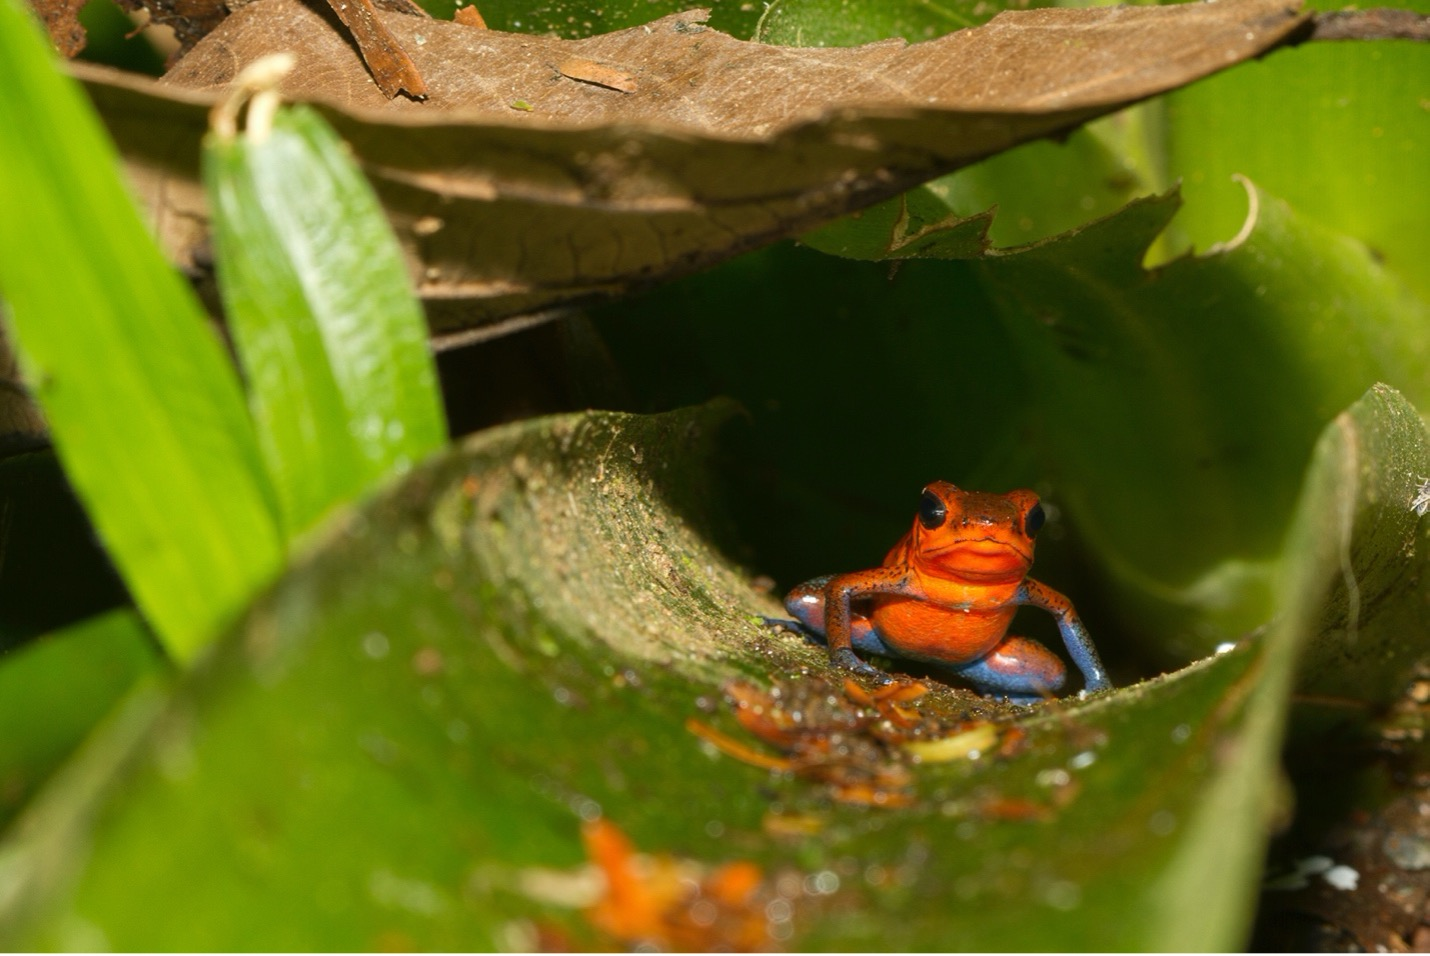 a poison arrow frog postures on a leaf in the forests of costa rica